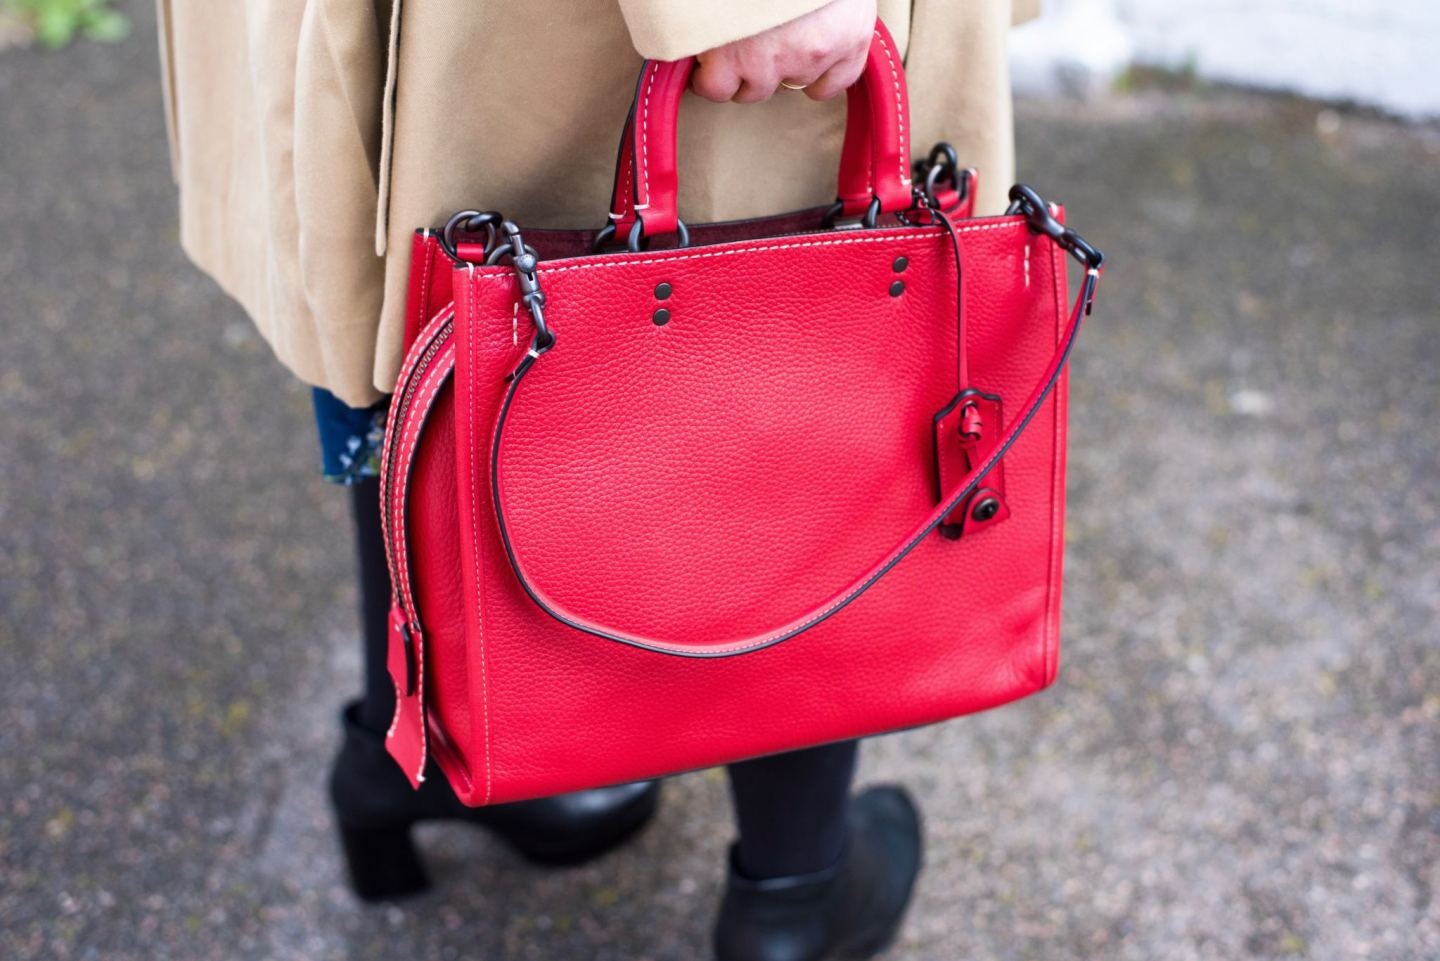 coach rogue handbag red leather tote bag fashion blogger